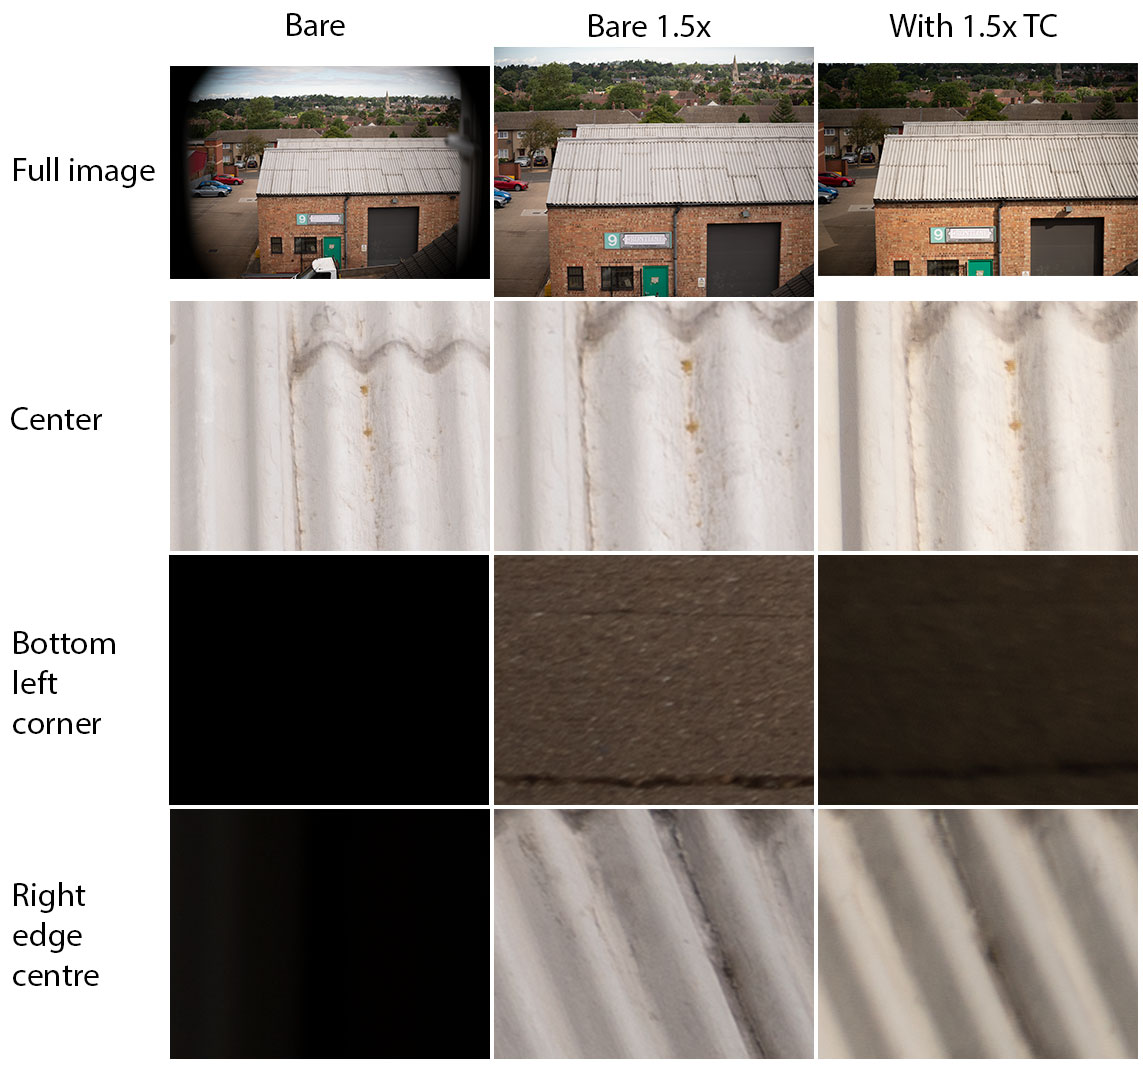 Comparison of images taken with Canon EF-S 55-250mm/4-5.6 IS STM lens at 55mm on Sony A7R II camera, with the bare lens, bare lens image enlarged by 1.5x, and with a 1.5x teleconverter